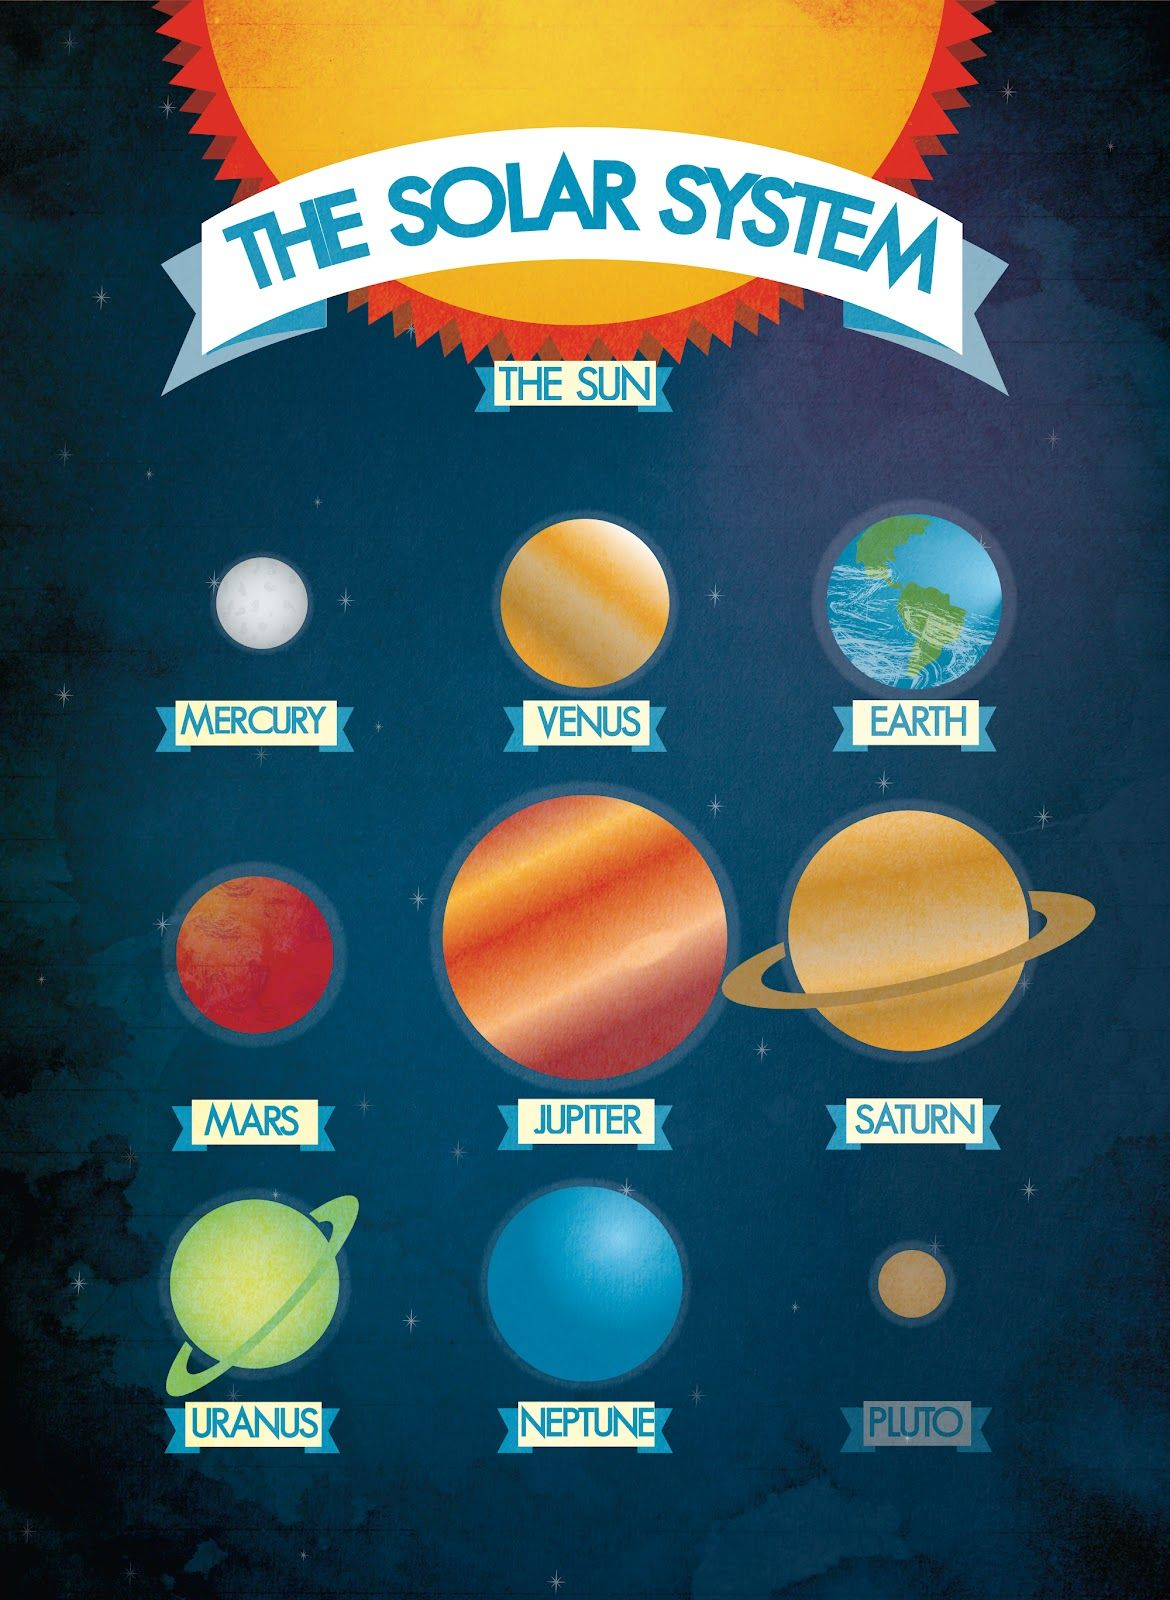 The Solar System Consists Of The Sun And The Planets Which